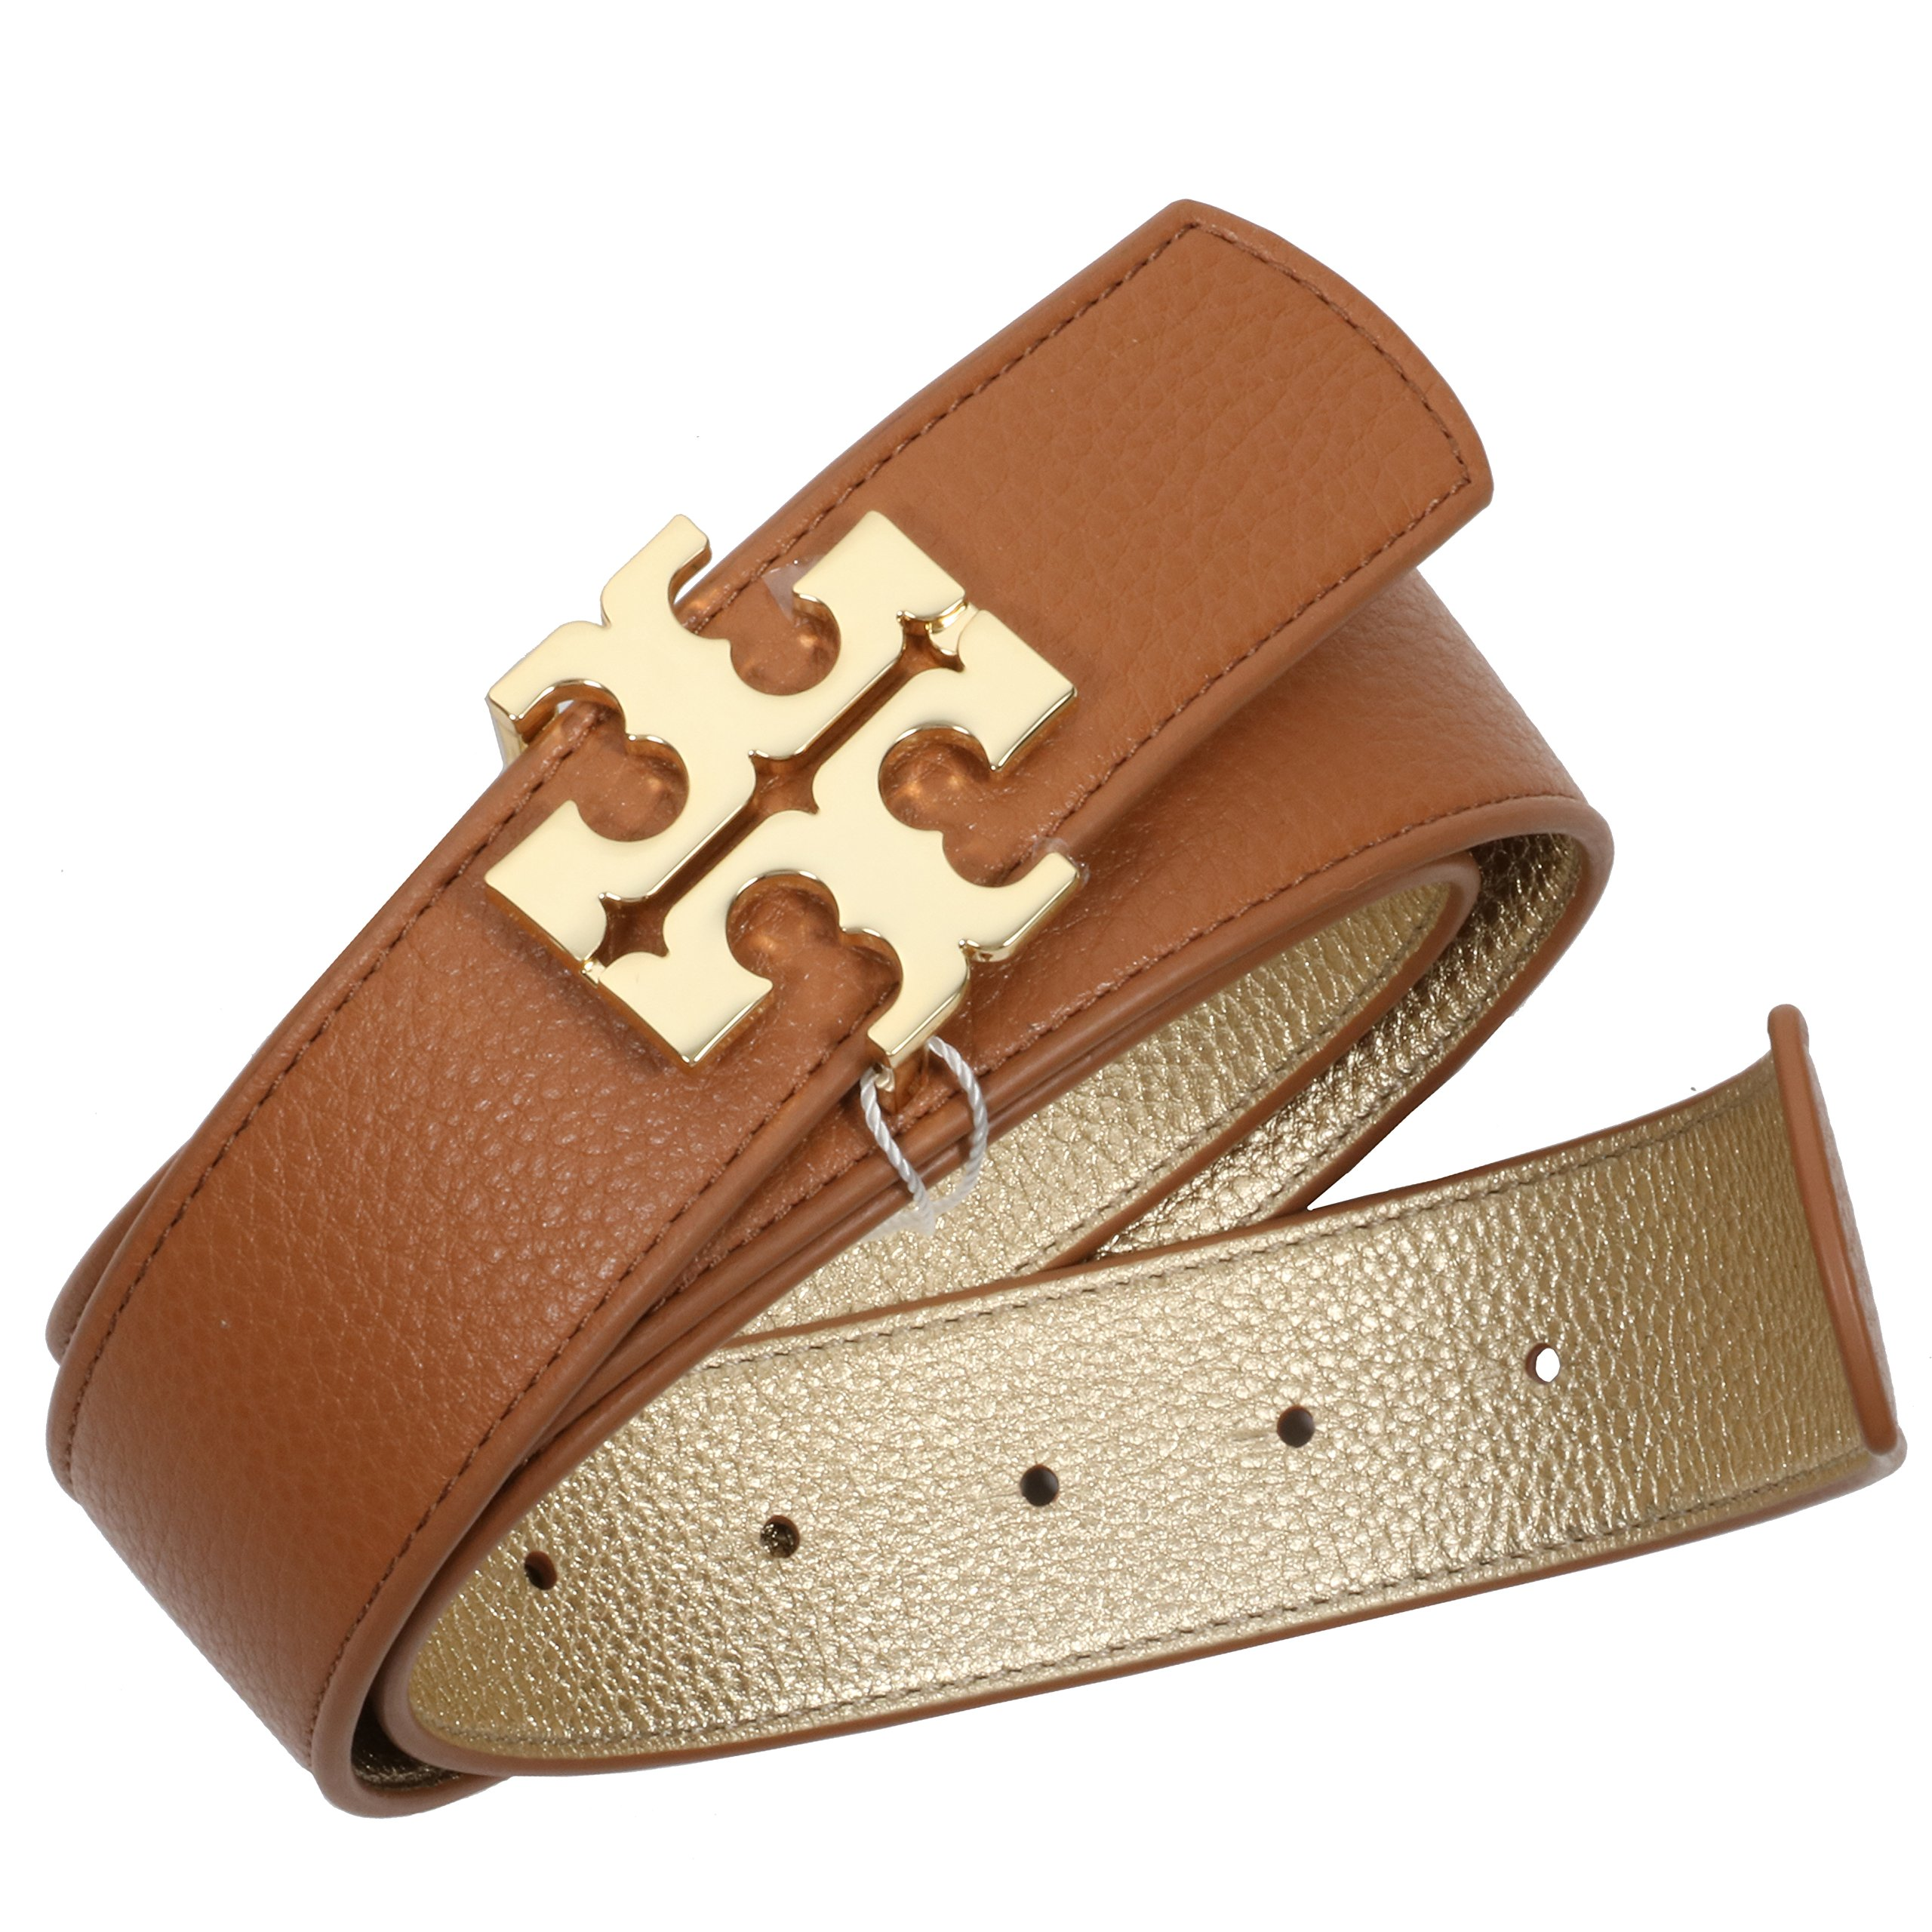 Tory Burch Reversible Belt 1 1/2'' Leather TB Logo Bark Gold (S) by Tory Burch